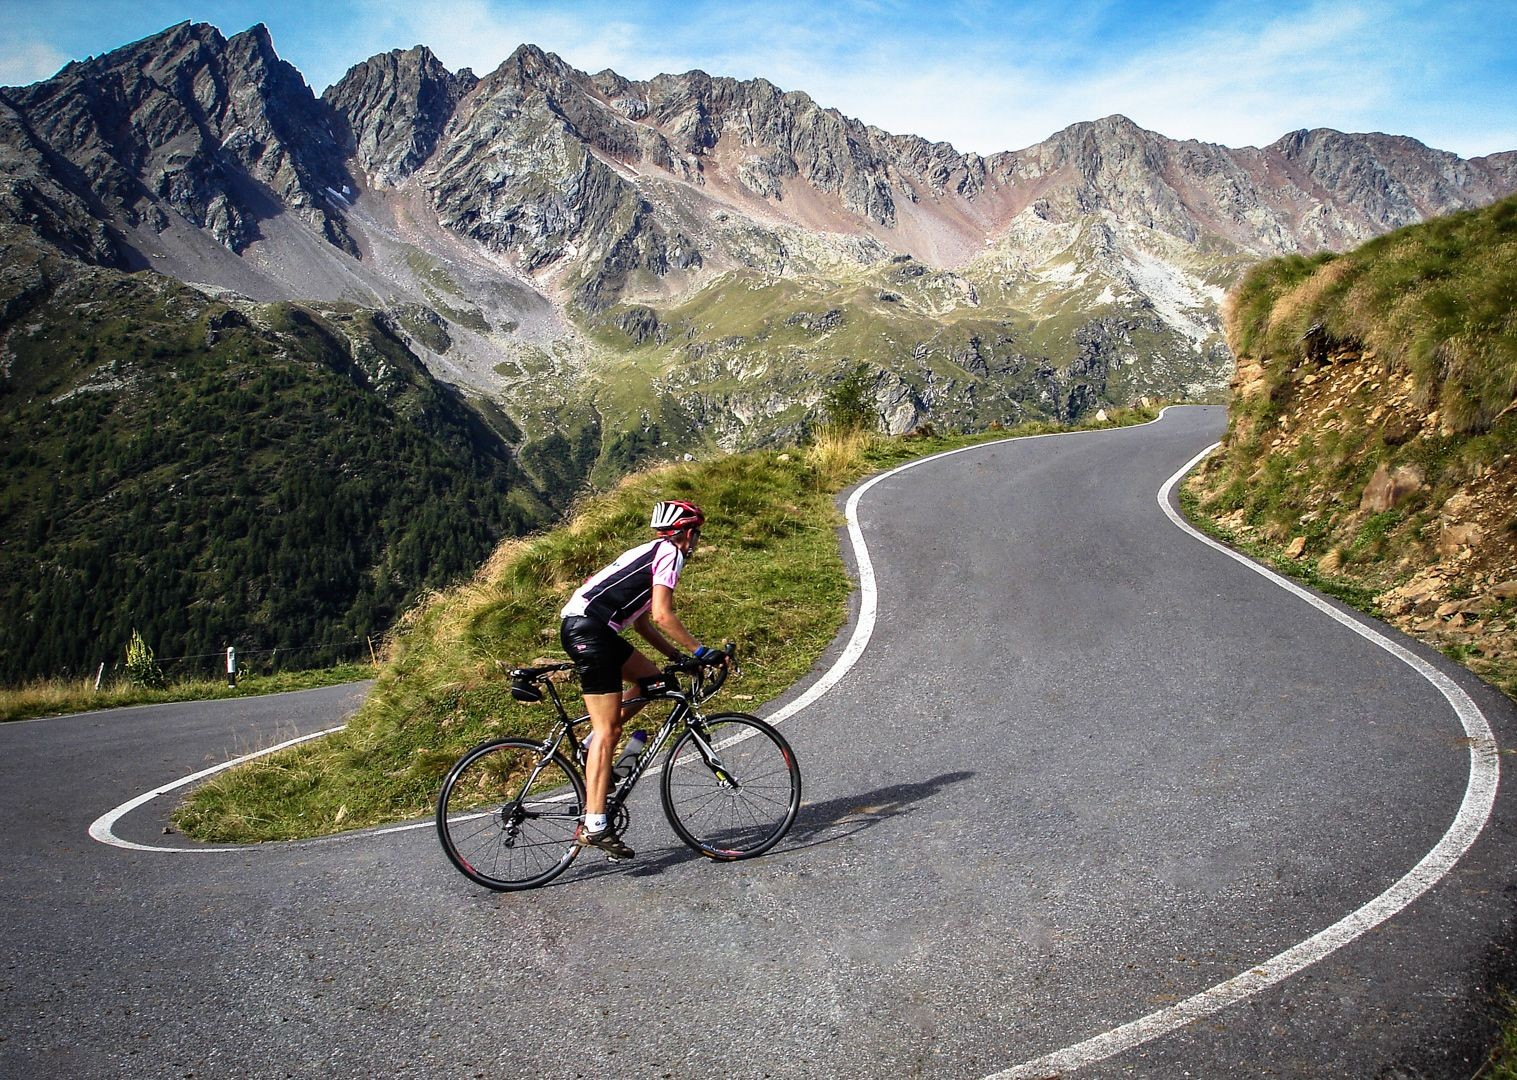 stevilo-pass-italy-road-cycling-guided-tour.jpg - Italy - Raid Dolomiti - Guided Road Cycling Holiday - Italia Road Cycling